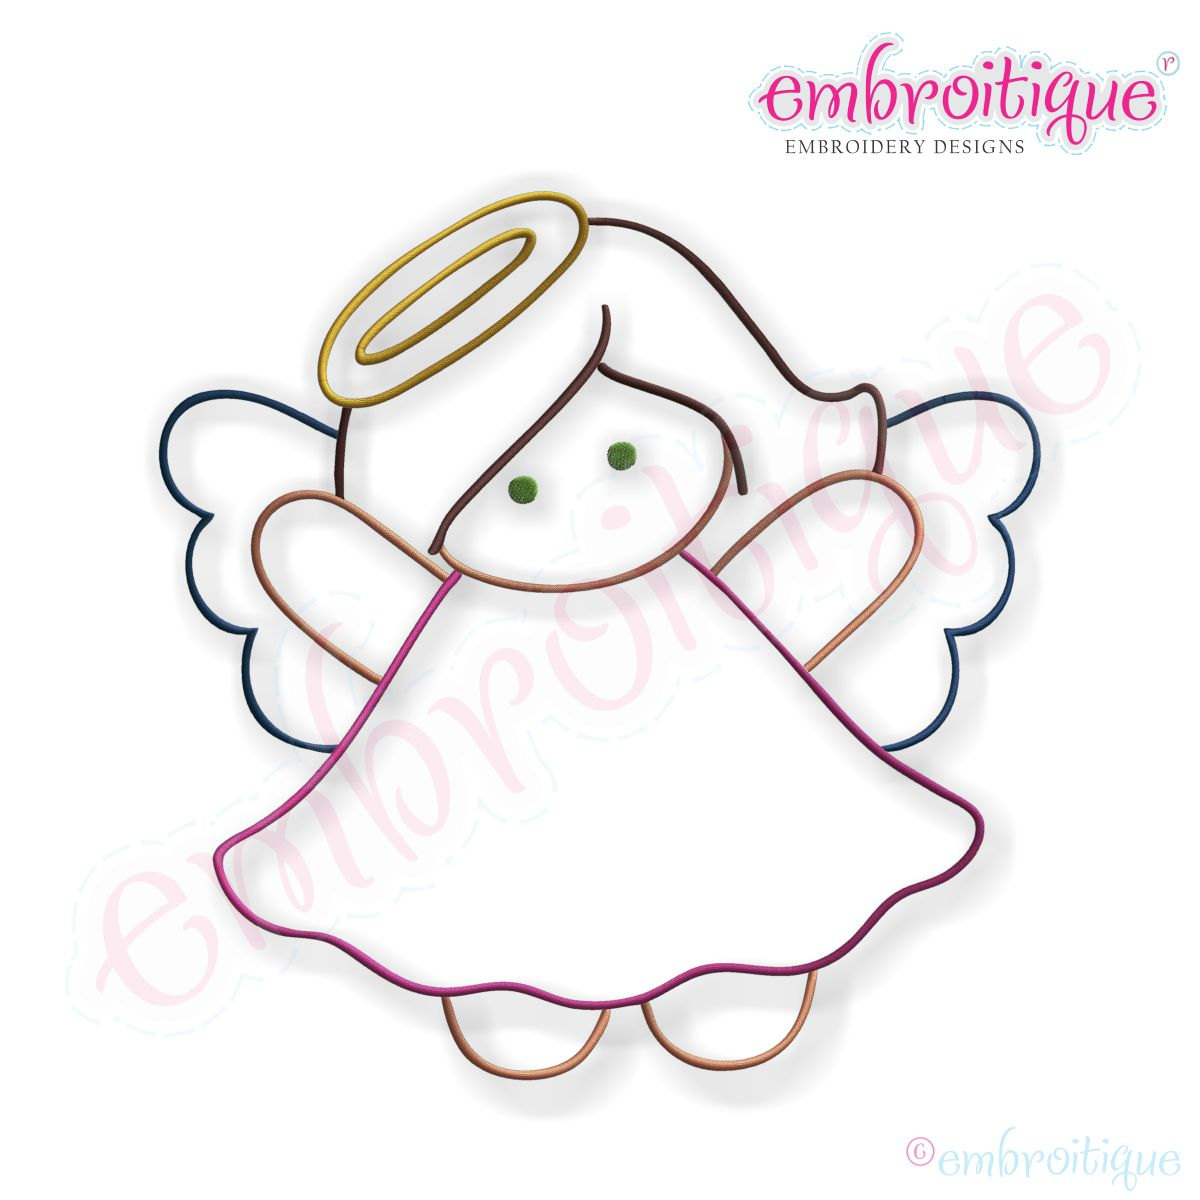 1200x1200 Simple Christmas Angel Embroidery Design Small Instant